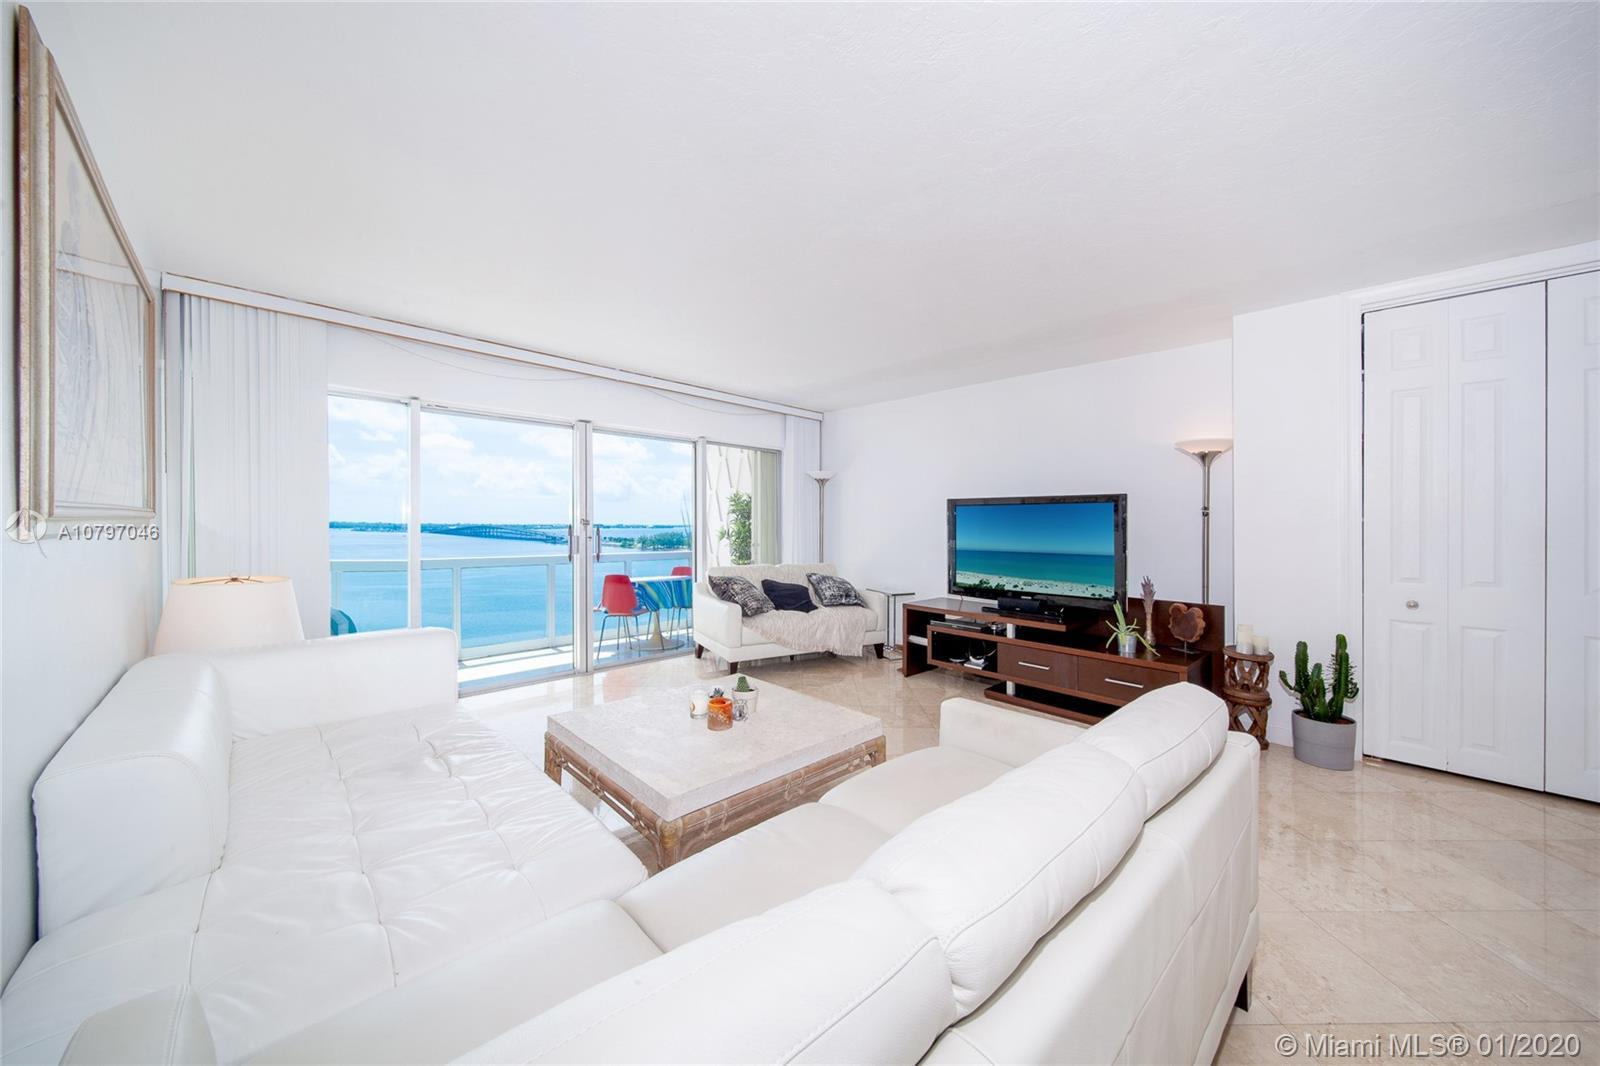 This stunning property of 1,288 sf with 2 Bedrooms & 2 Bathrooms overlooking an endless view of Bisc